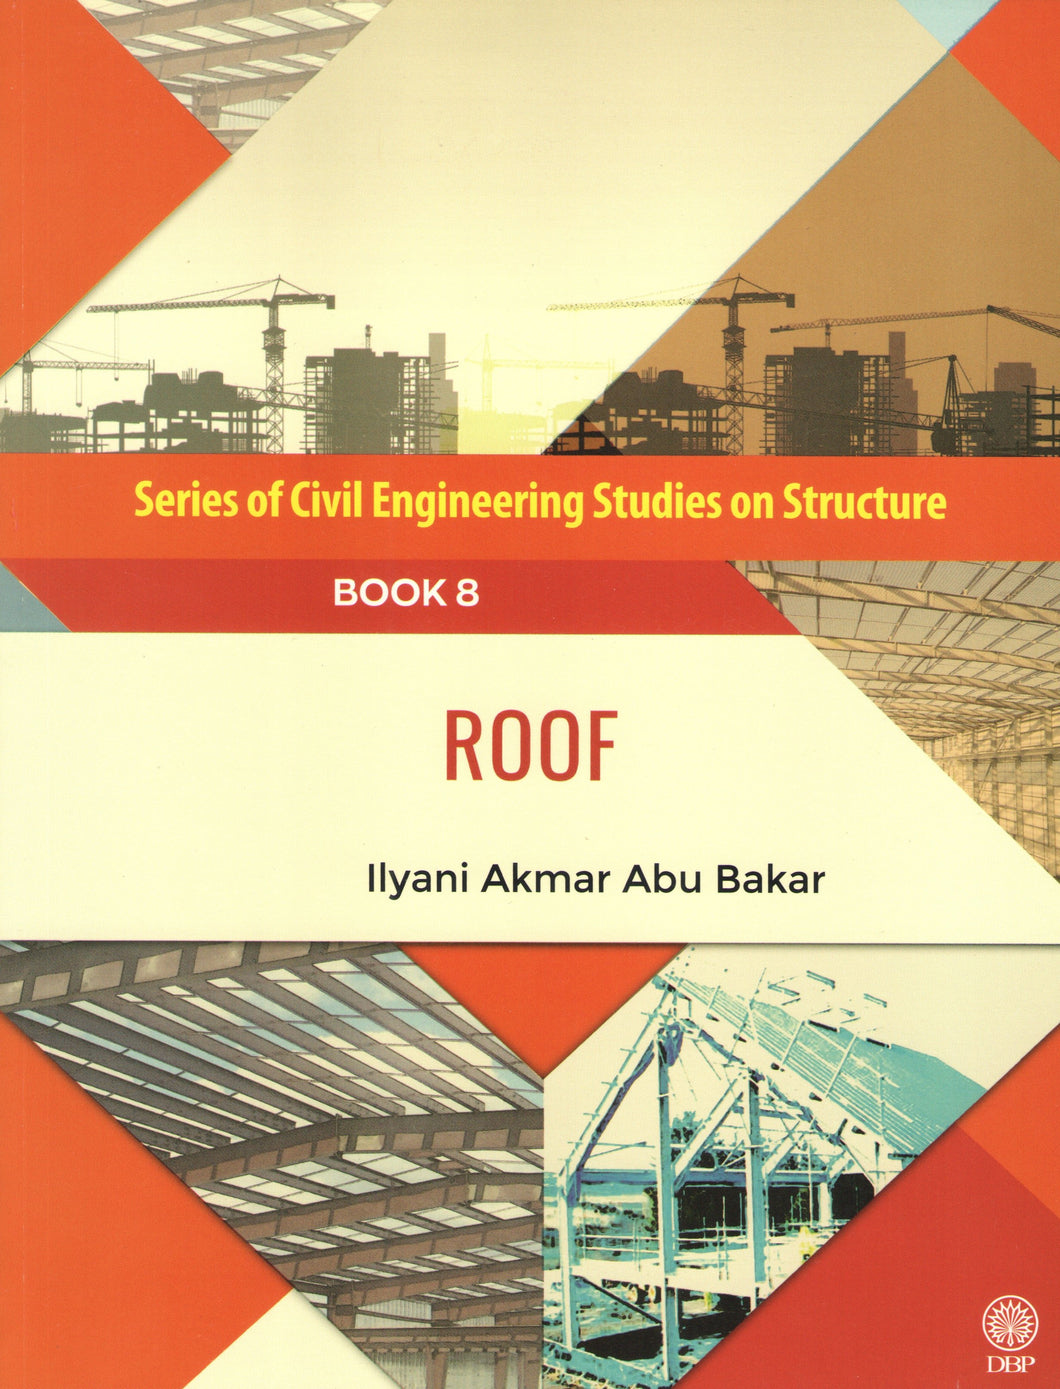 Series of Civil Engineering Studies on Structure: Book 8 Roof